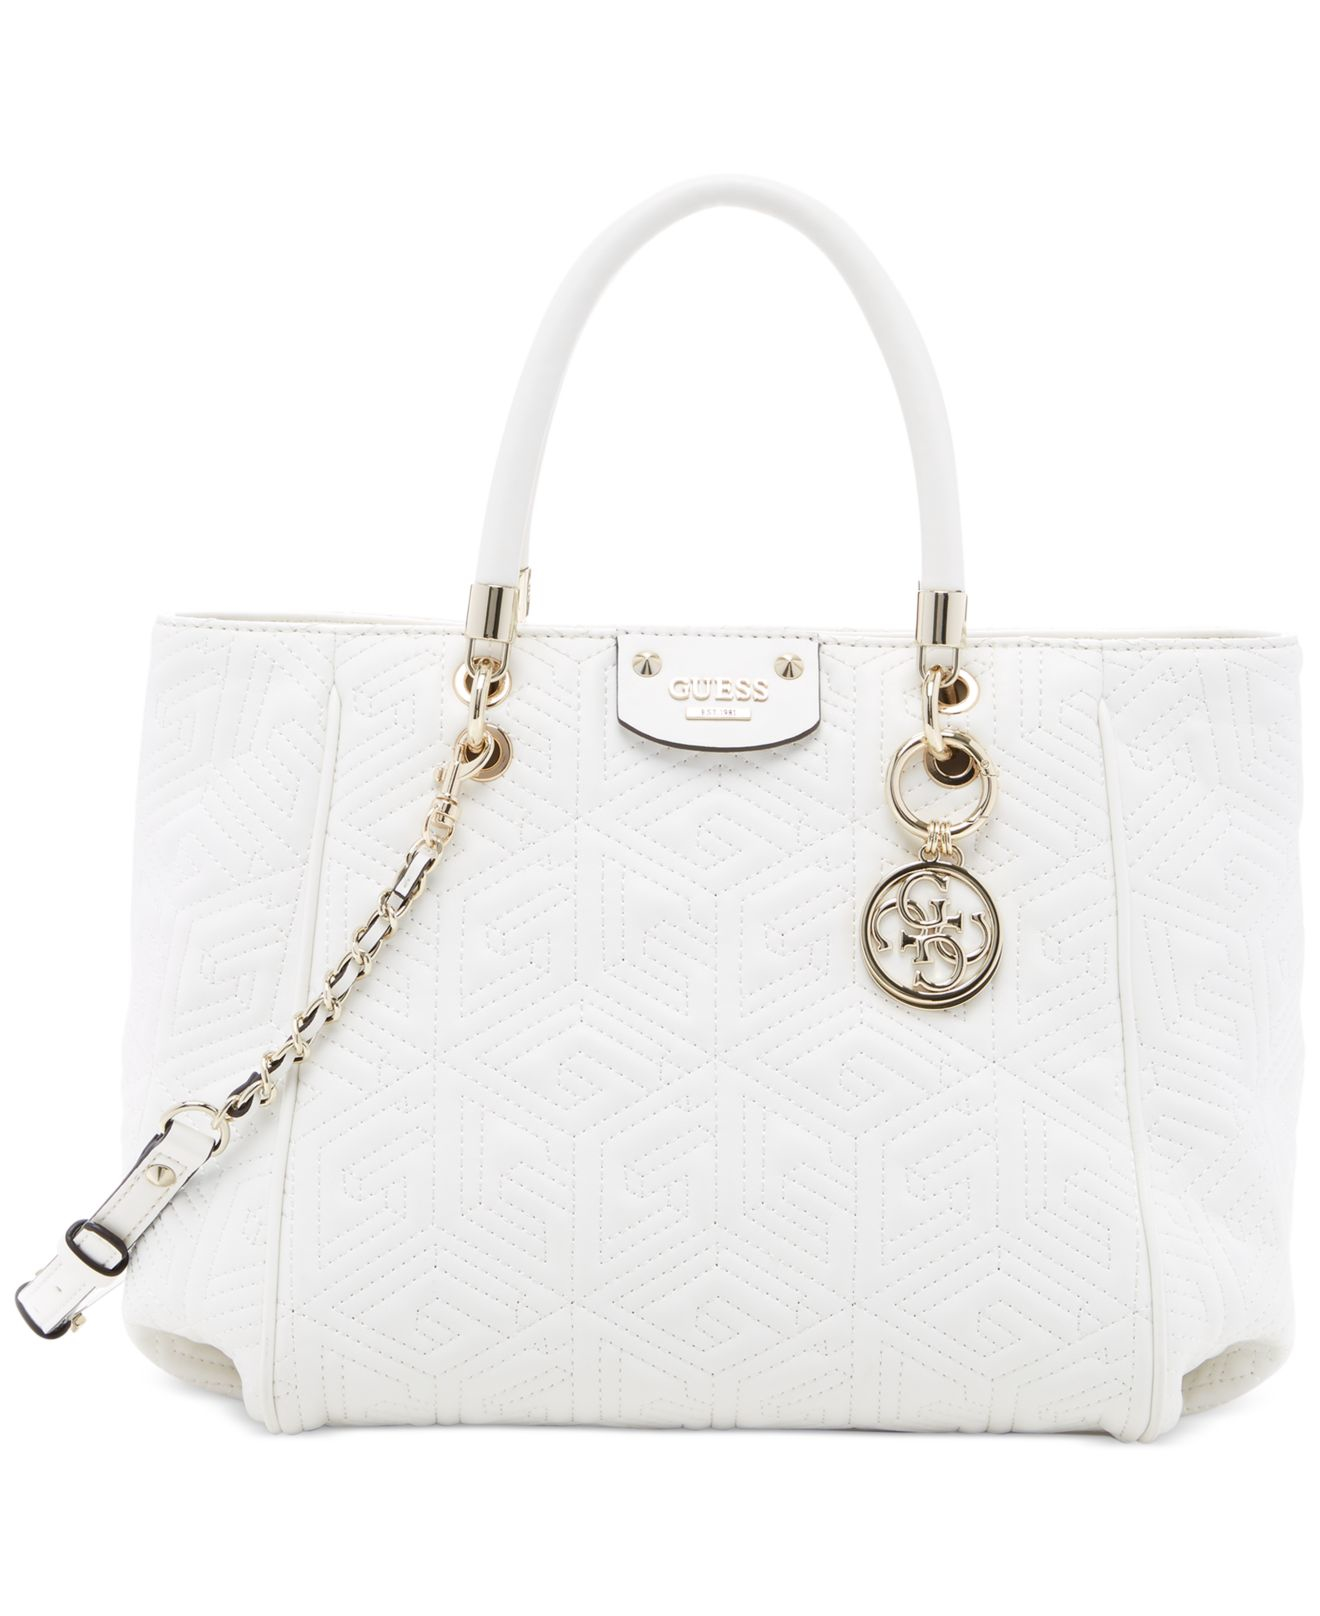 e39a0a7903b4 Lyst - Guess G Cube Abbey Quilted Convertible Shopper in White